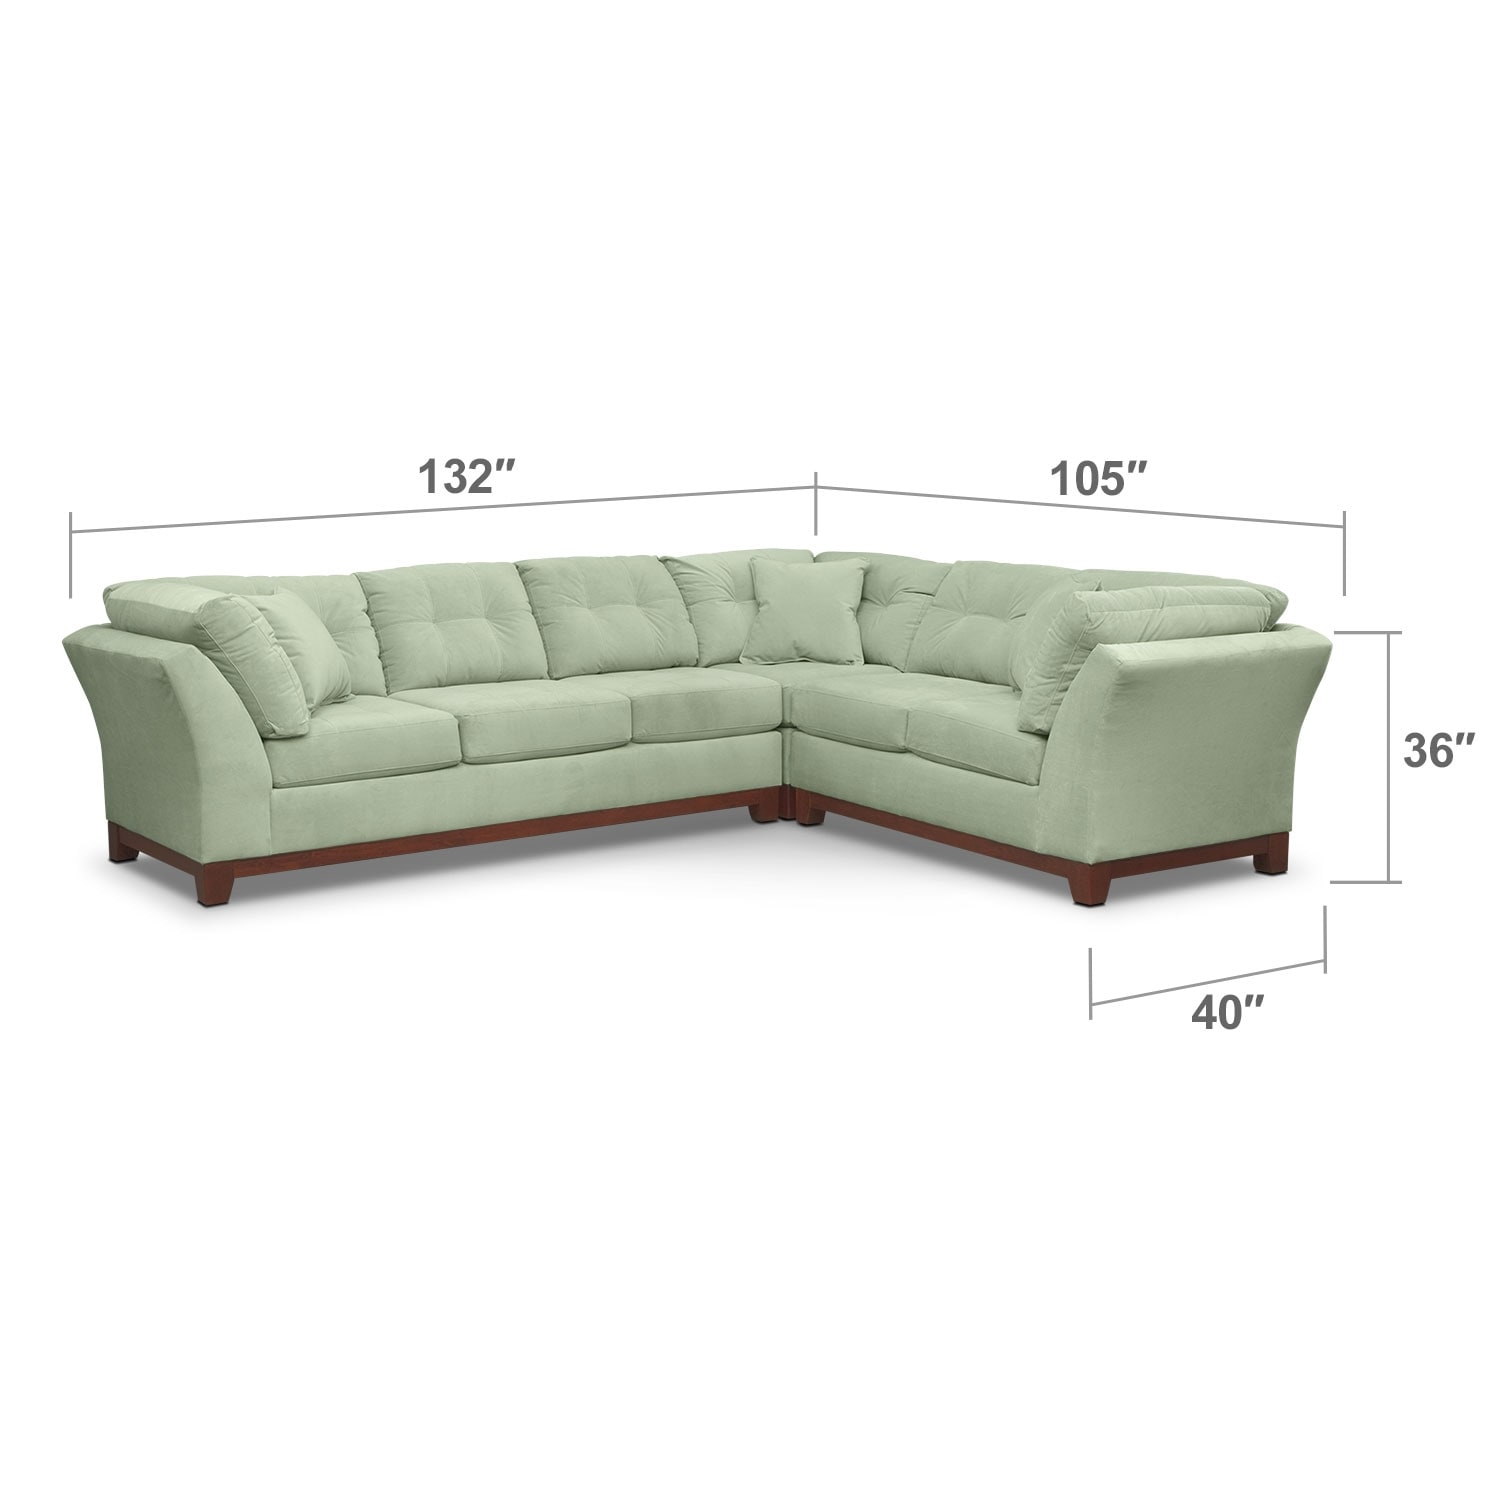 Living Room Furniture - Solace Spa II 3 Pc. Sectional (Reverse)